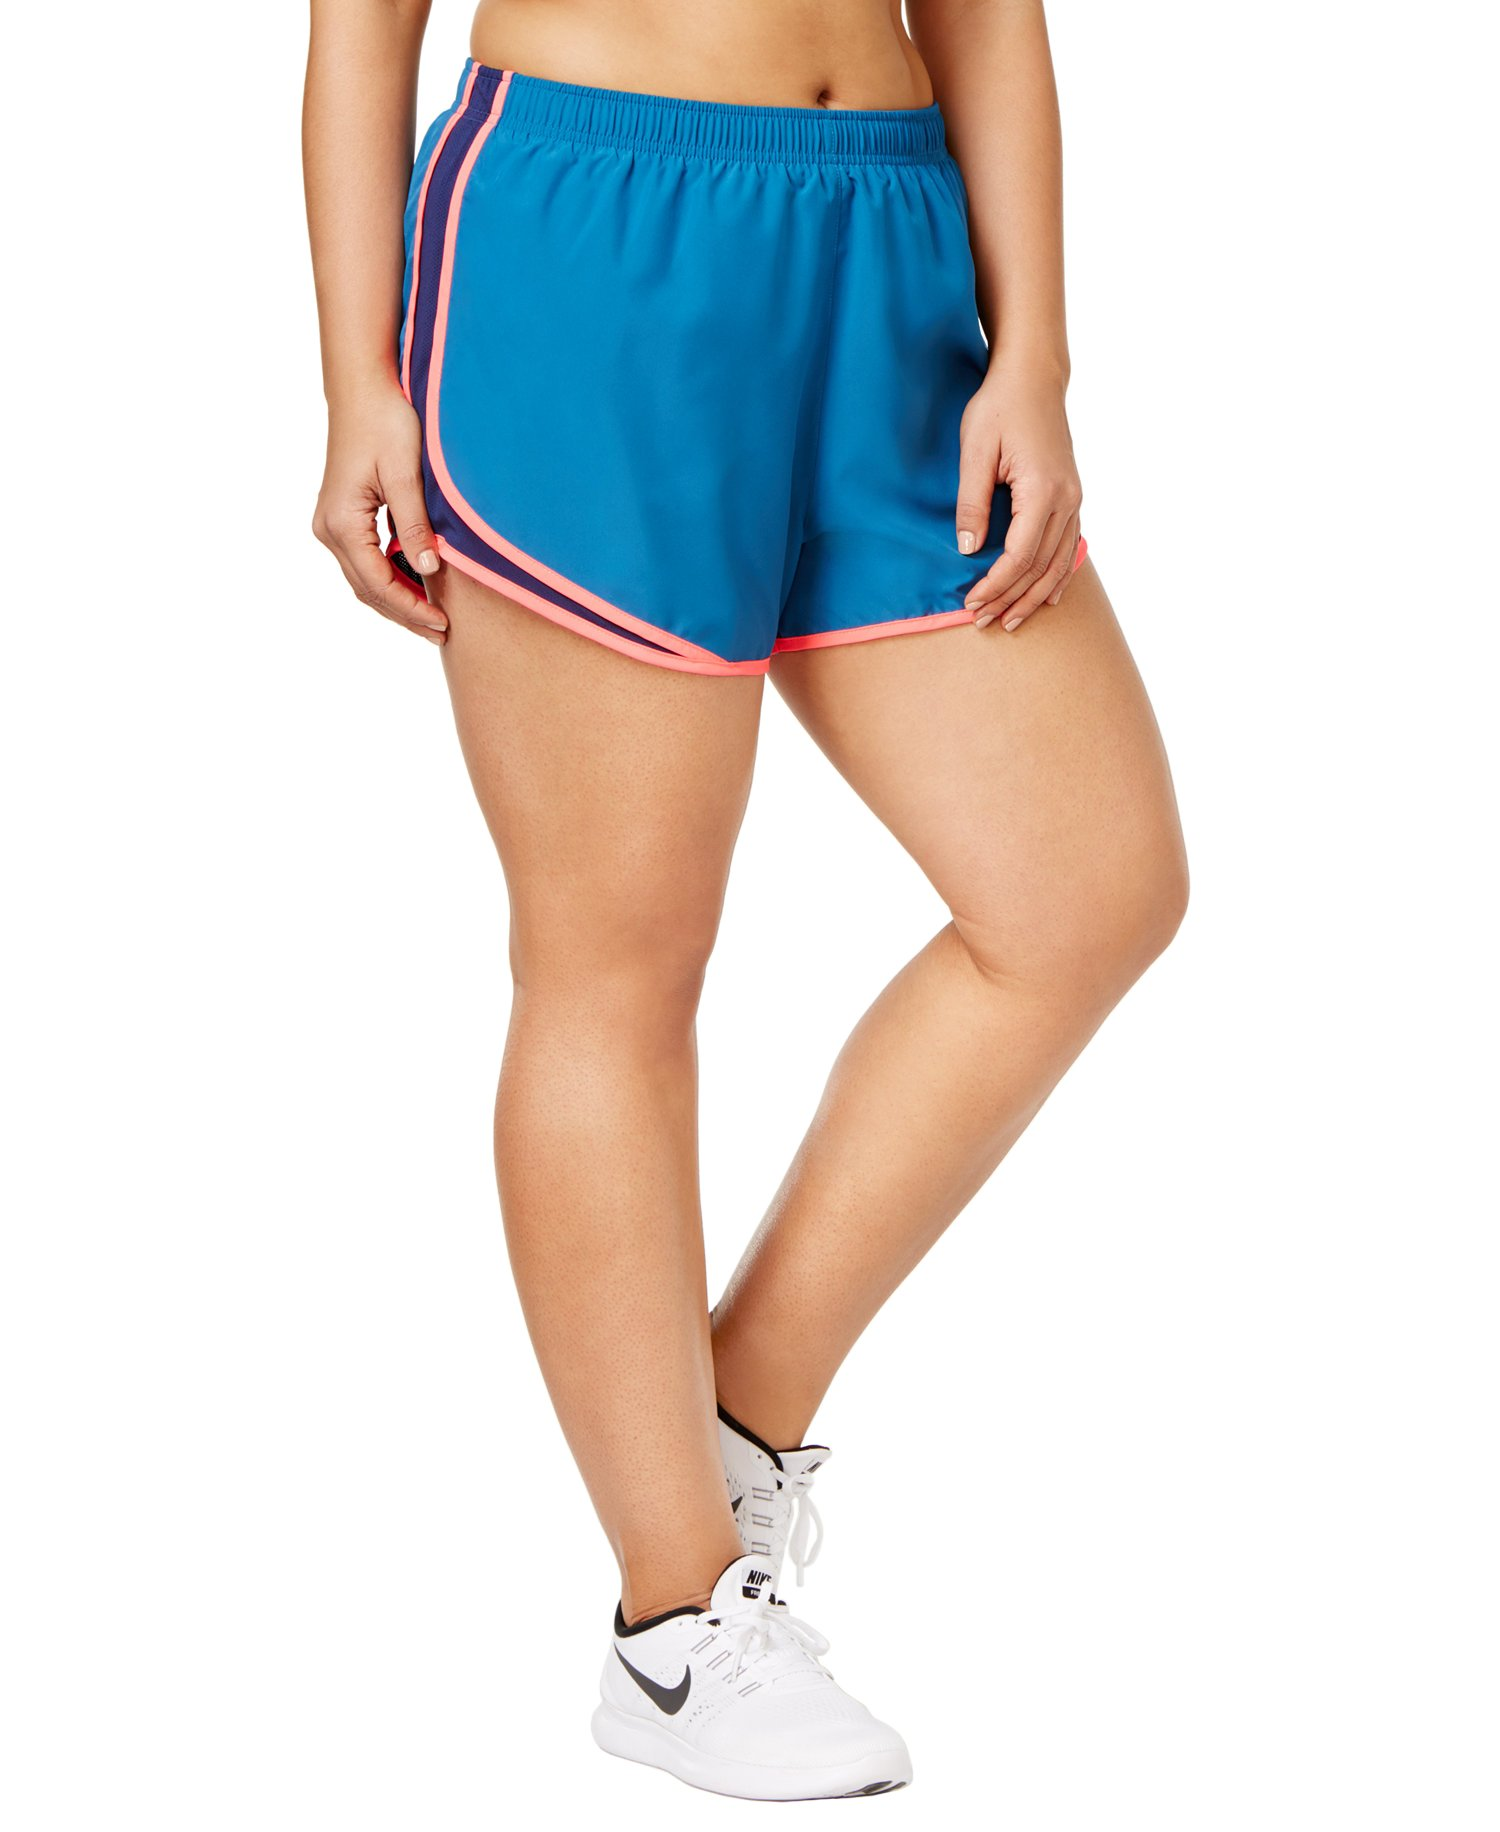 Details about Nike Women's Plus Size Tempo Running Fitness Shorts Binary Blue 3 Extra Large